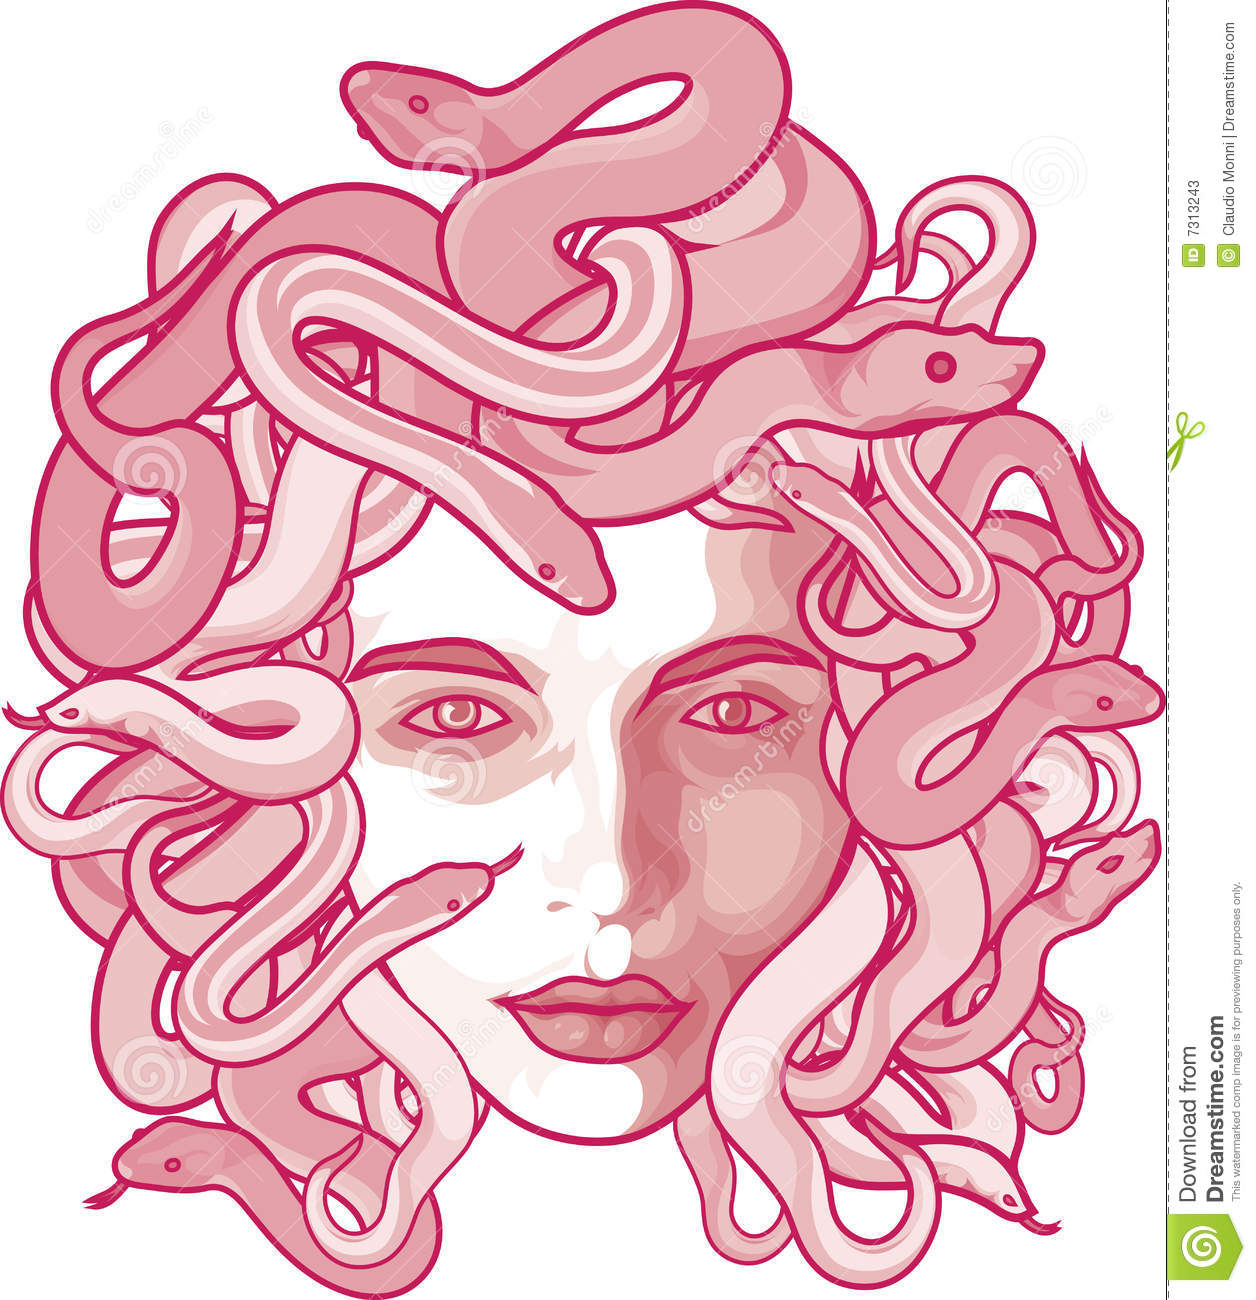 Medusa clipart #11, Download drawings